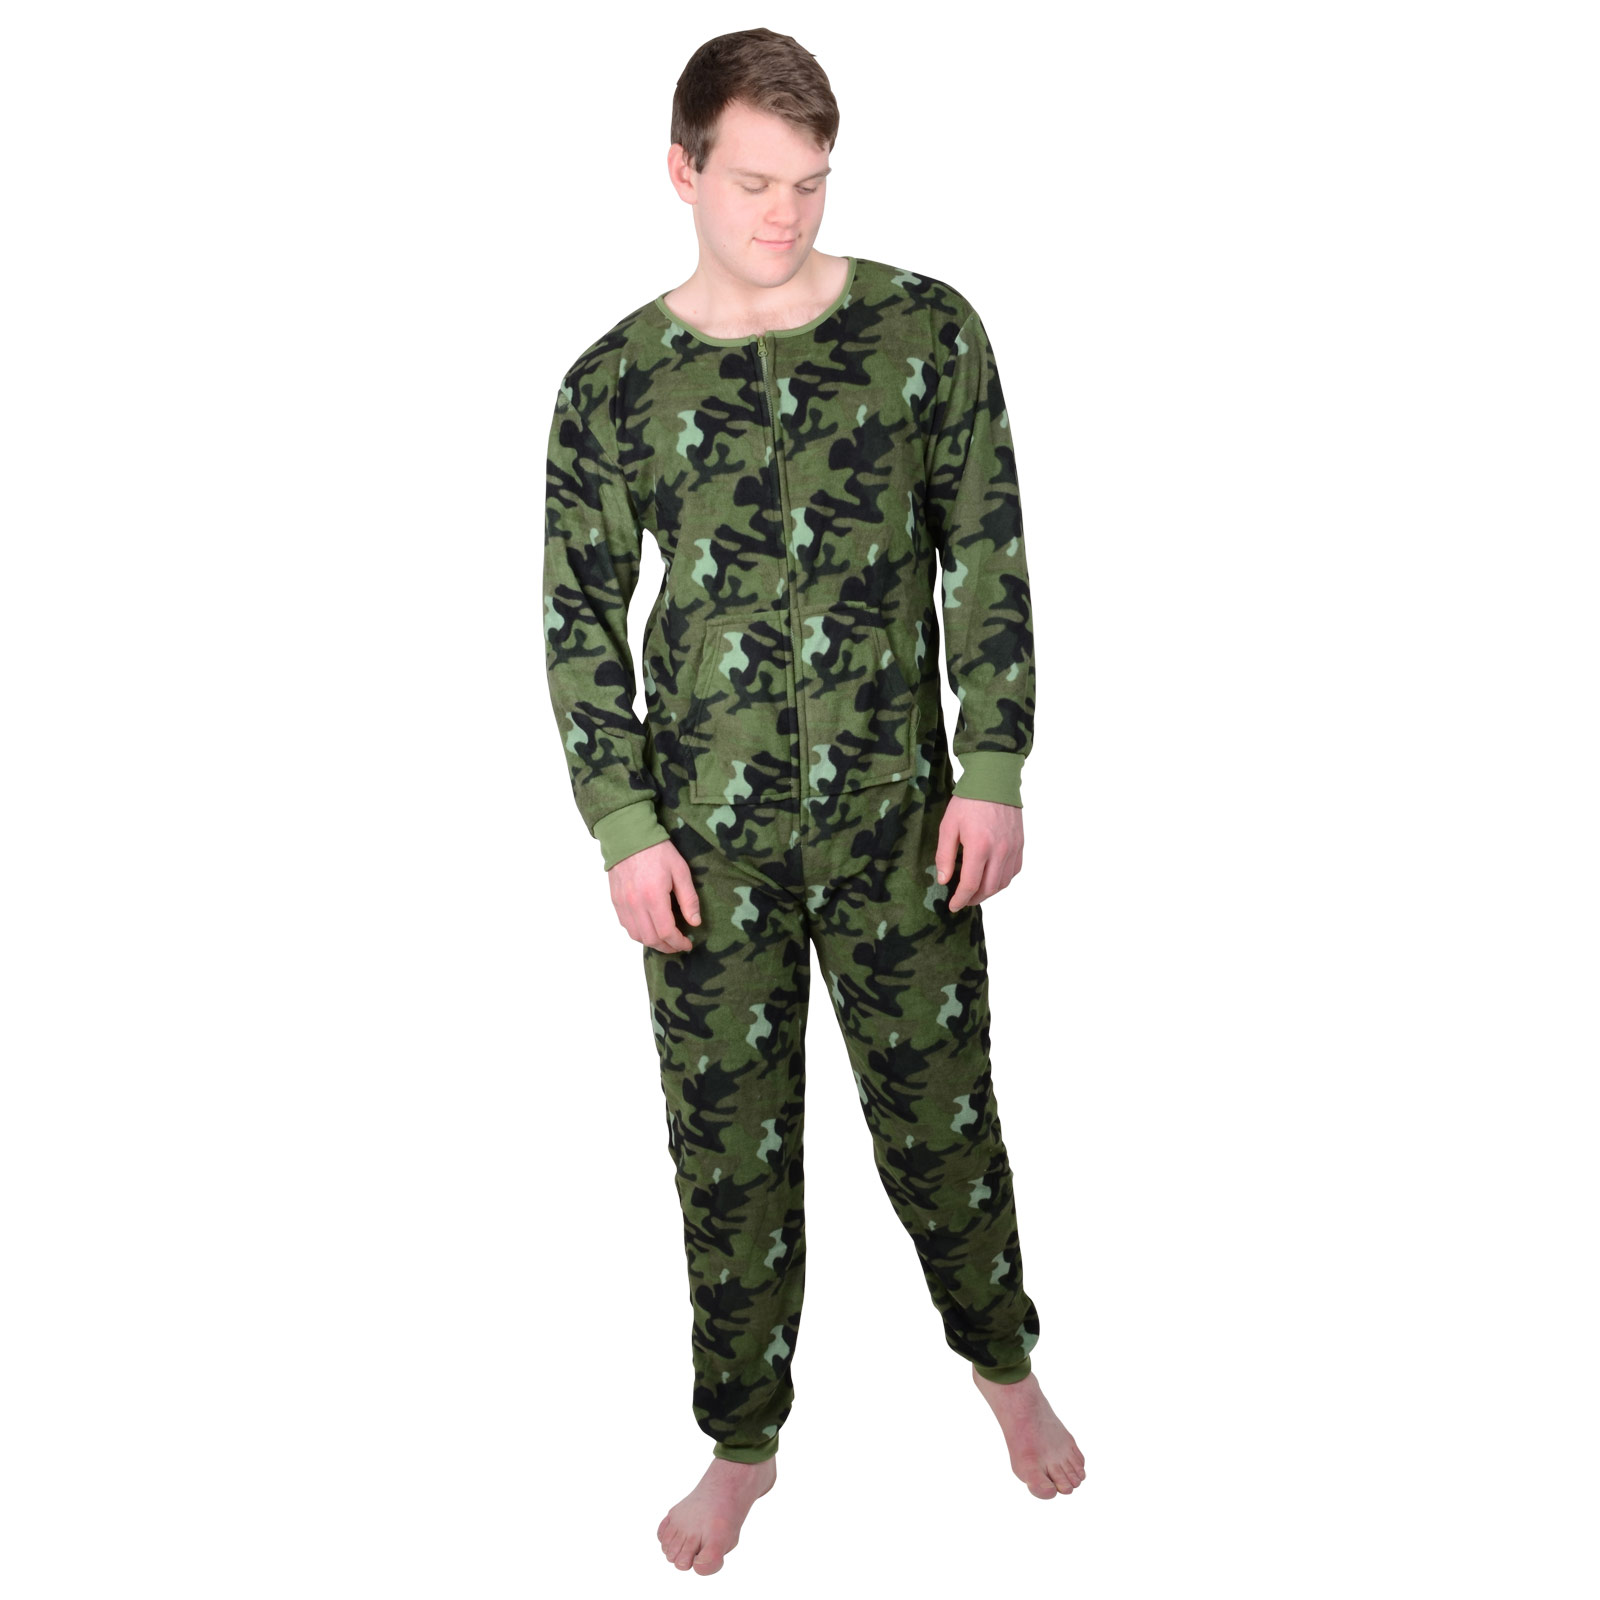 Mens-Onesie-Fleecy-Warm-All-in-One-Green-Army-Camouflage-Design-Sizes ...